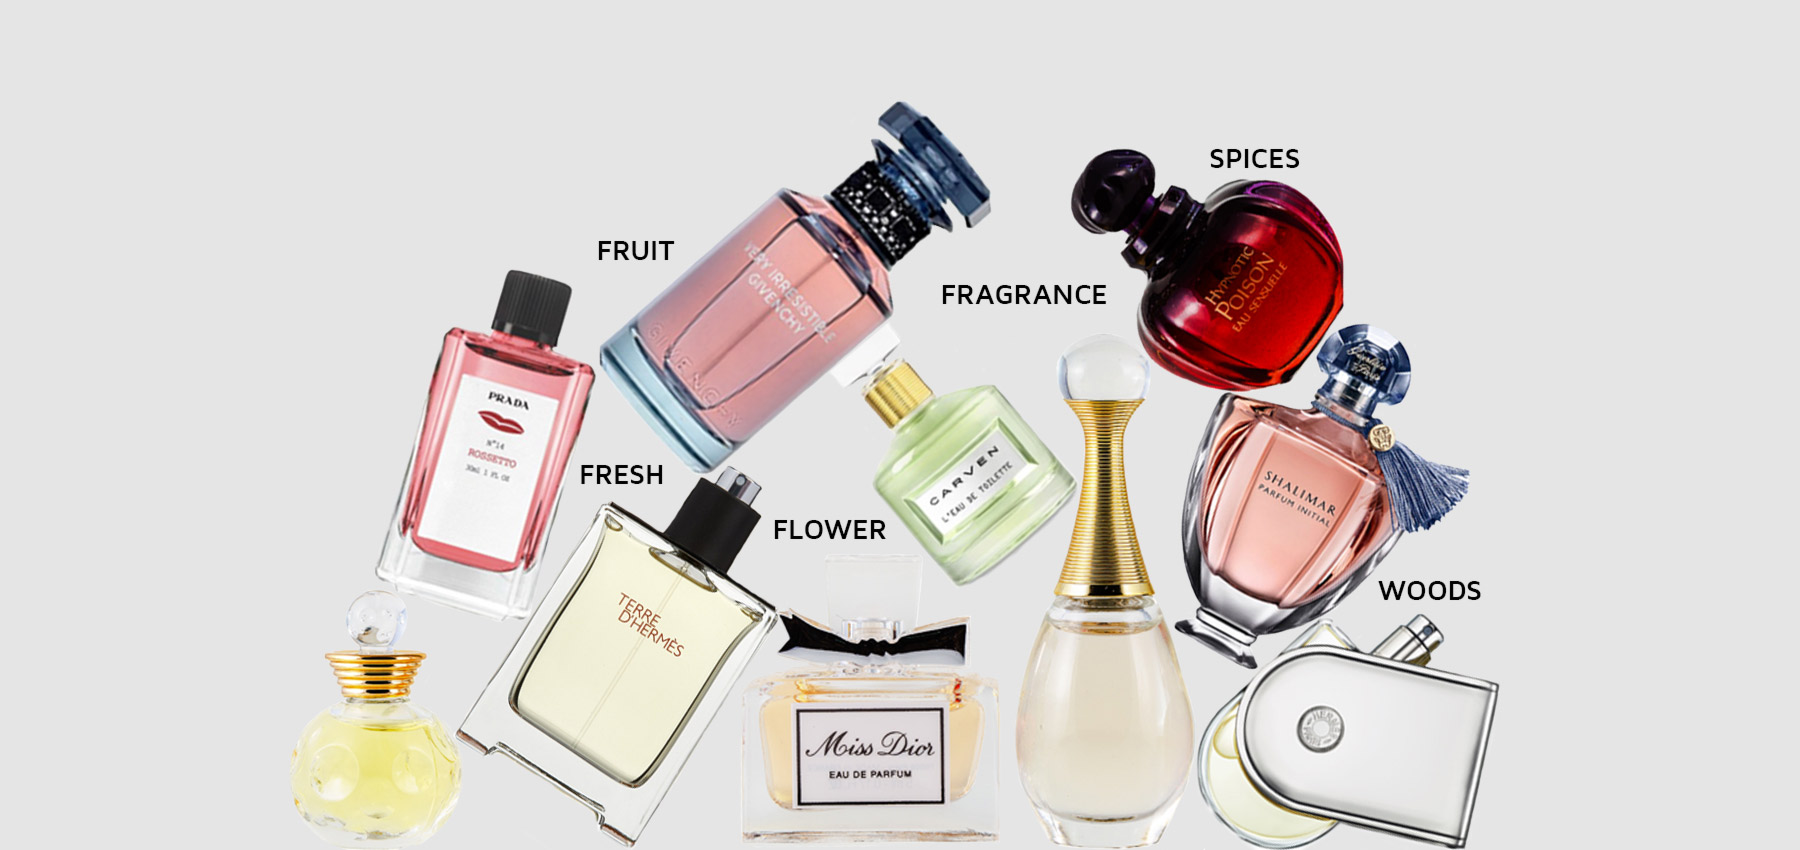 You want to change your perfume?